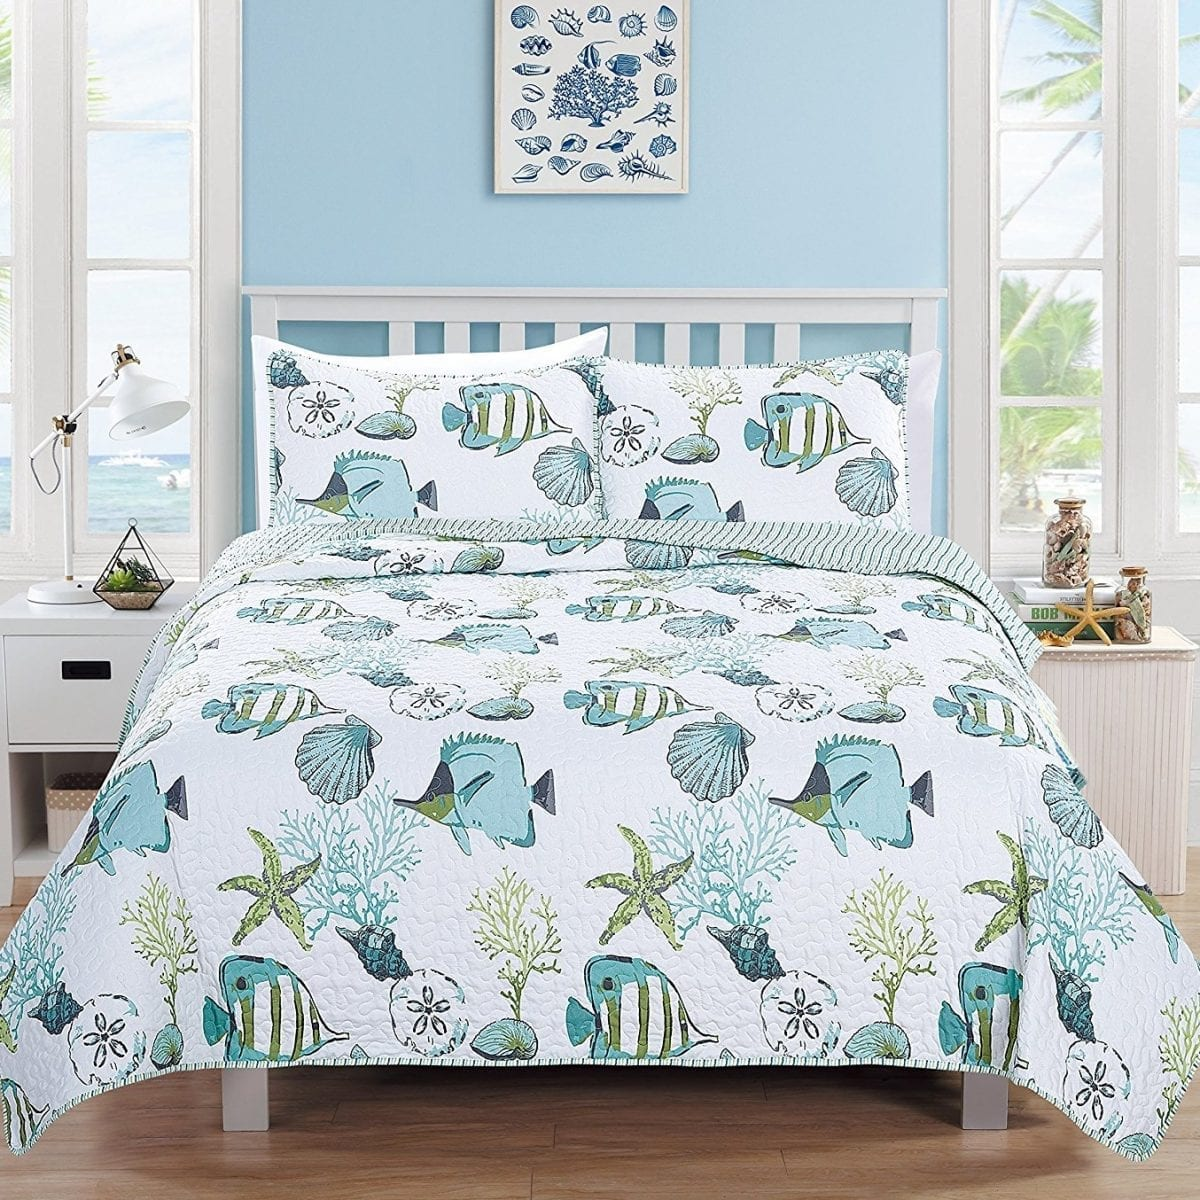 3-Piece-Coastal-Beach-Theme-Quilt-Set-with-Shams Coastal Bedding Sets and Beach Bedding Sets